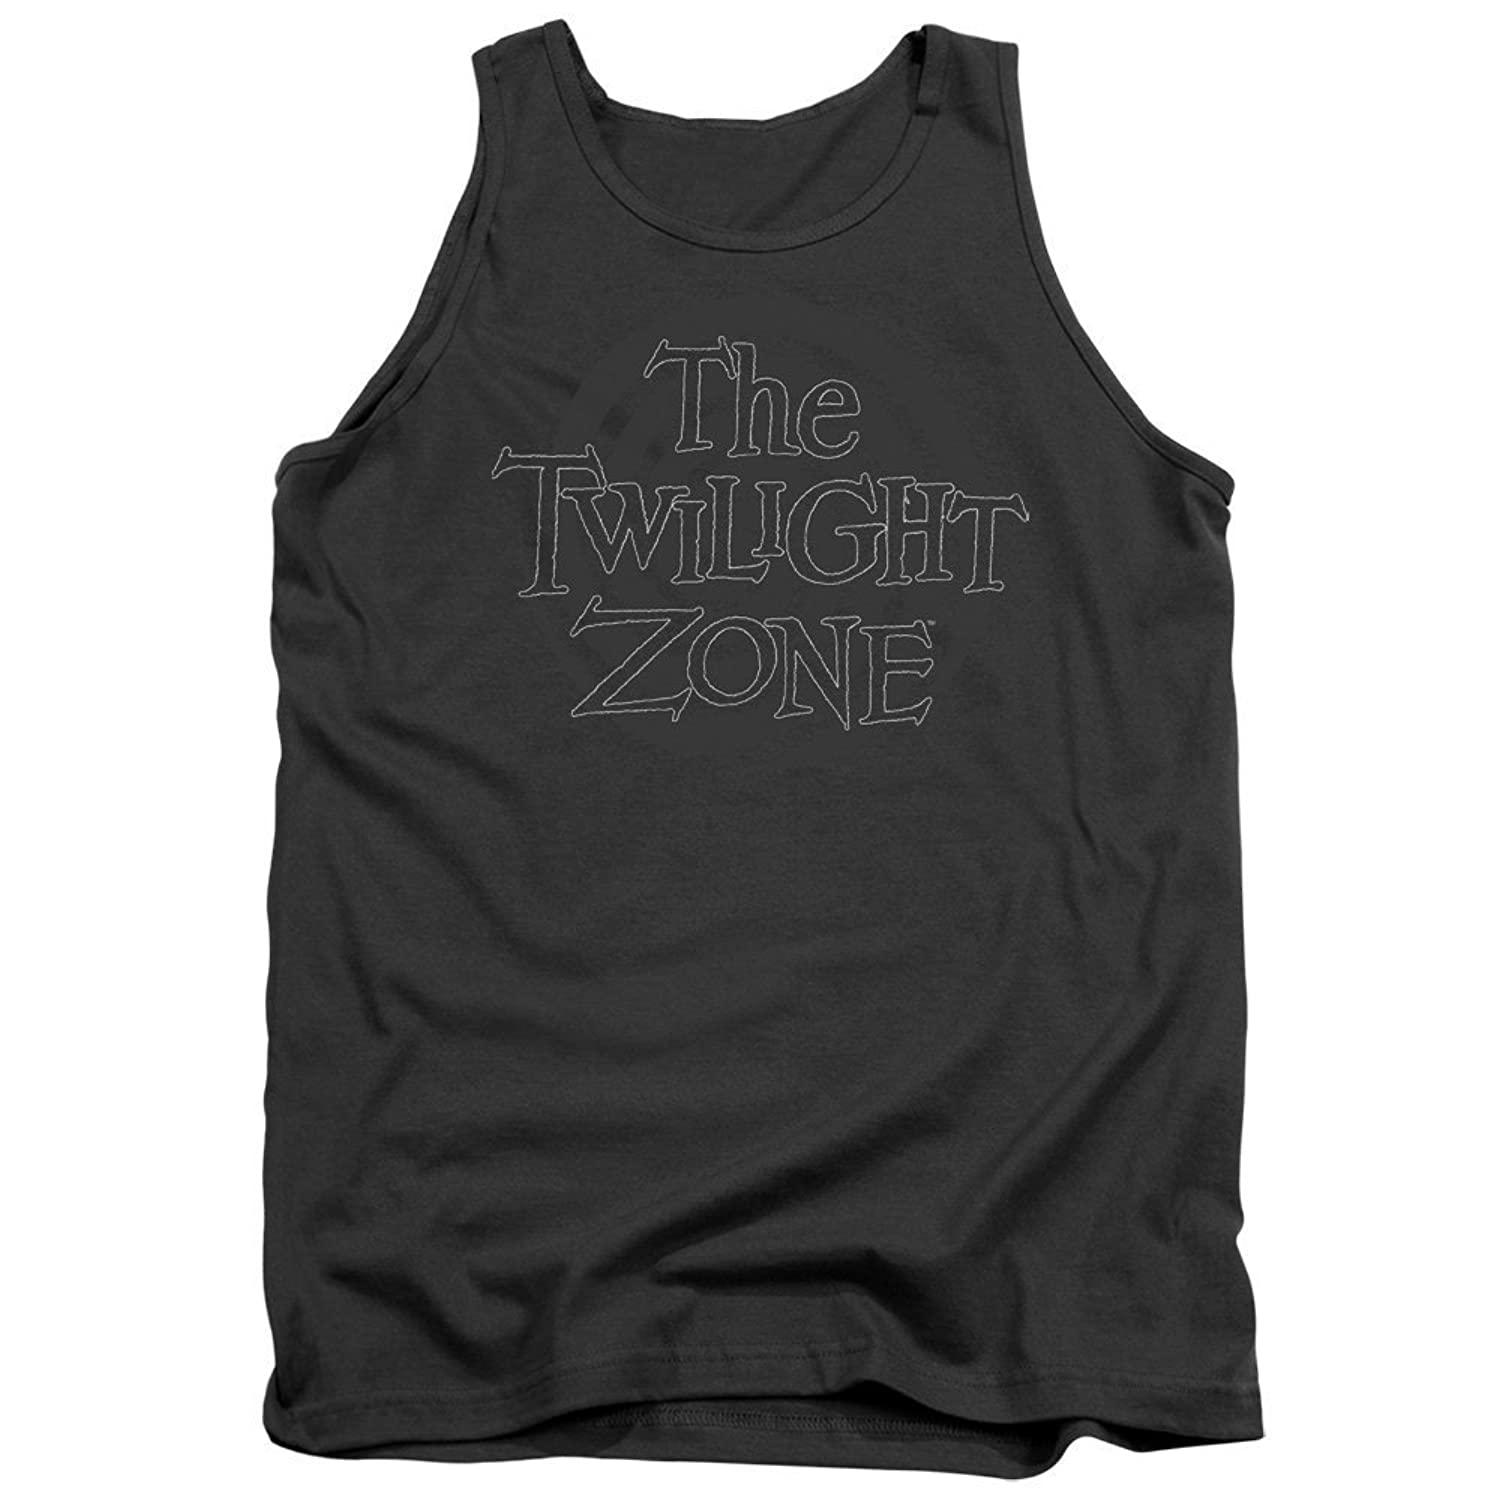 The Twilight Zone Classic Sci-Fi TV Show Spiral Logo Adult Tank Top Shirt